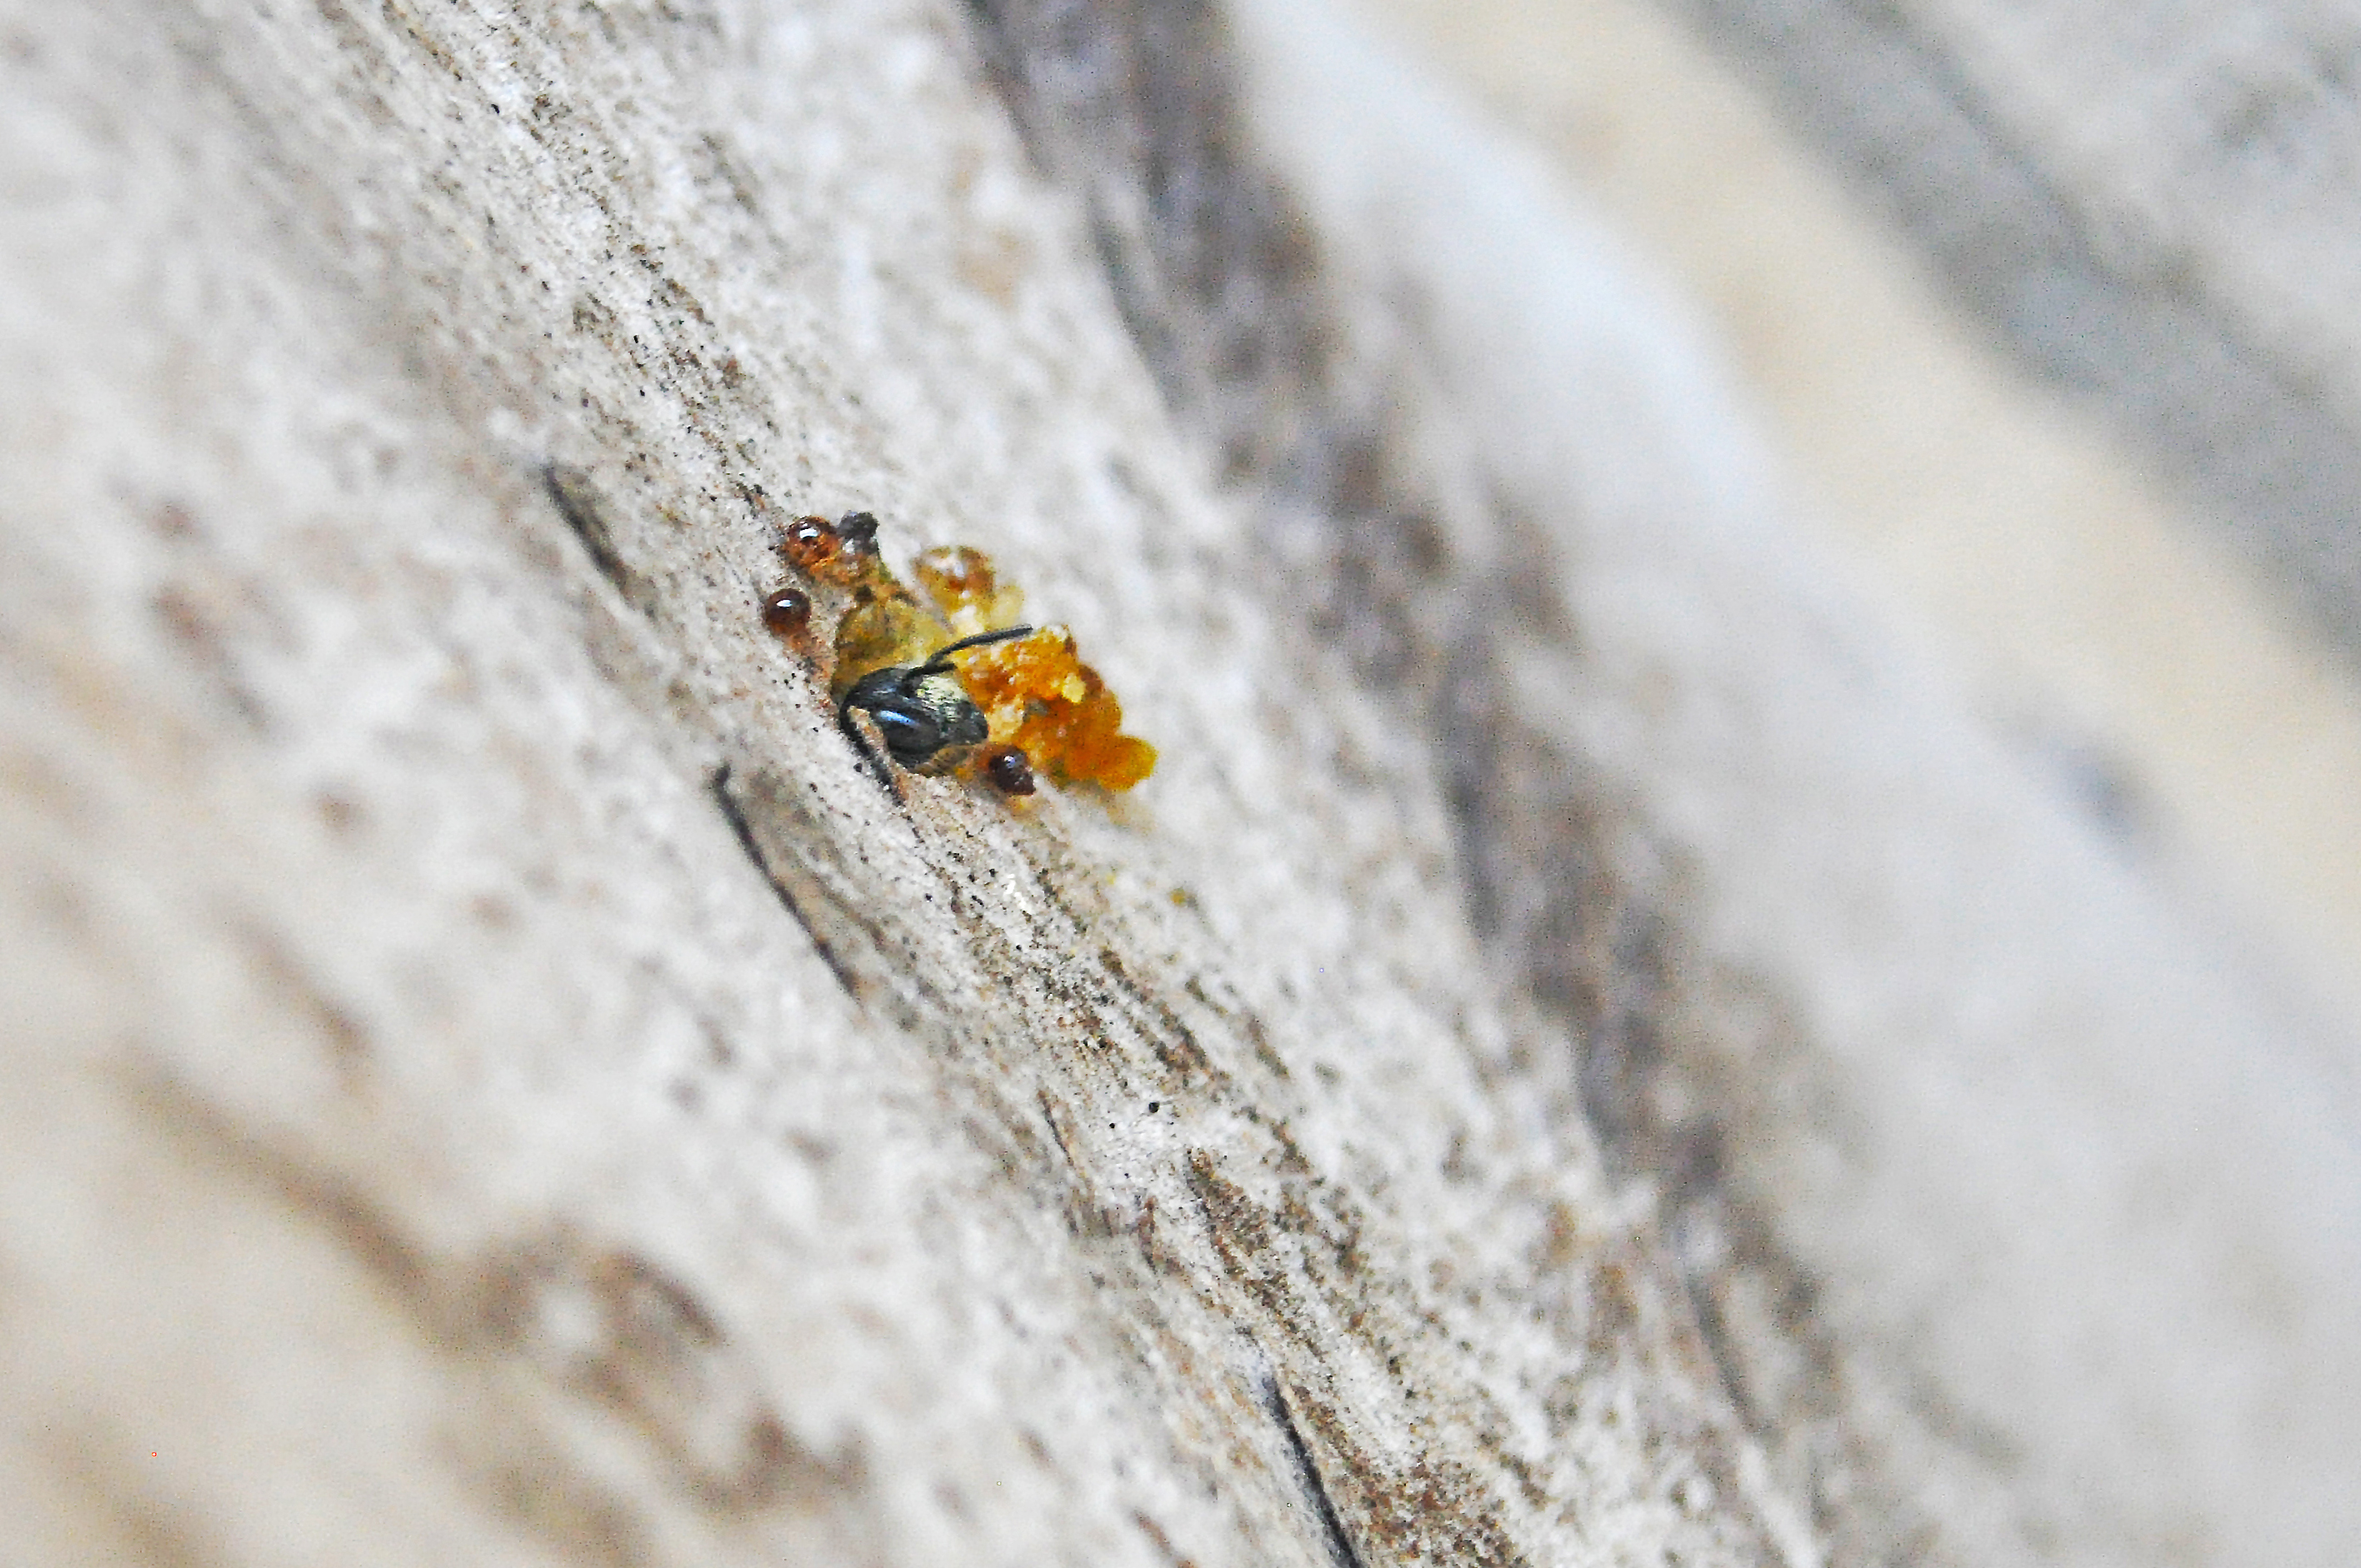 In a pale, slightly textured wall is a hole surrounded by amber-like resin. A small bee is poking its head out of the hole.